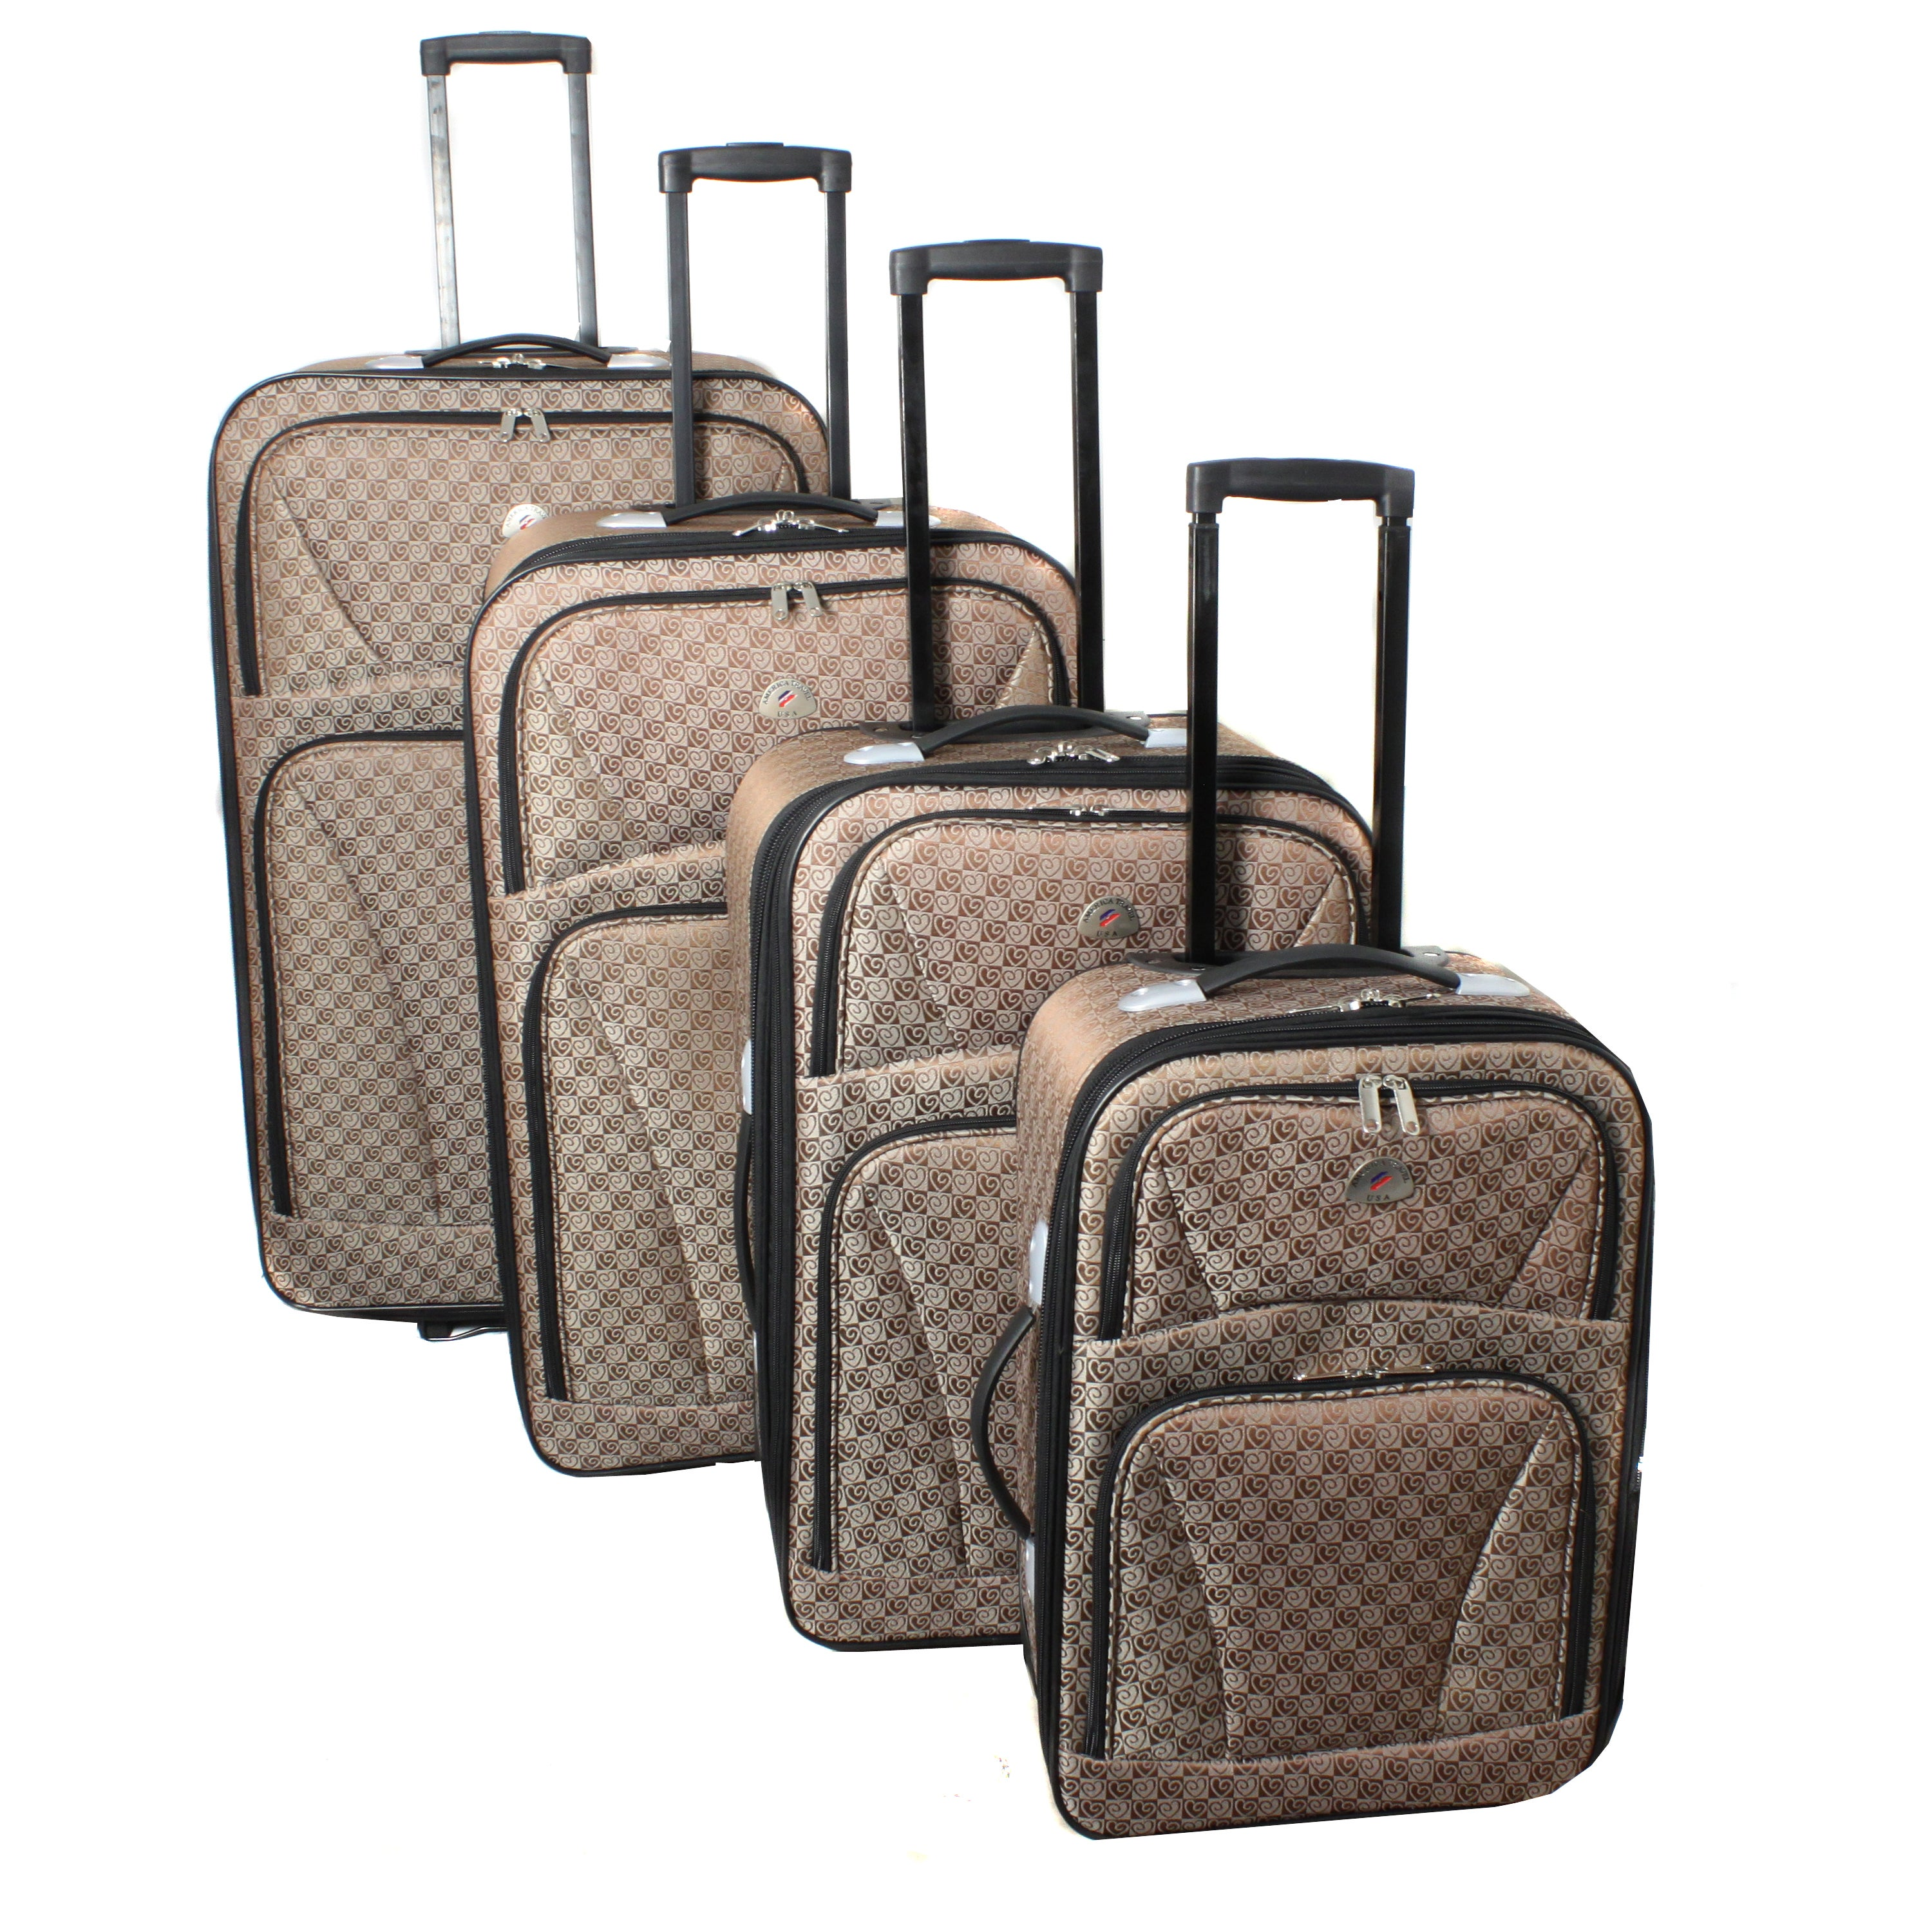 American Traveler 'Hearts' 4-piece Brown Expandable Wheeled Luggage Set